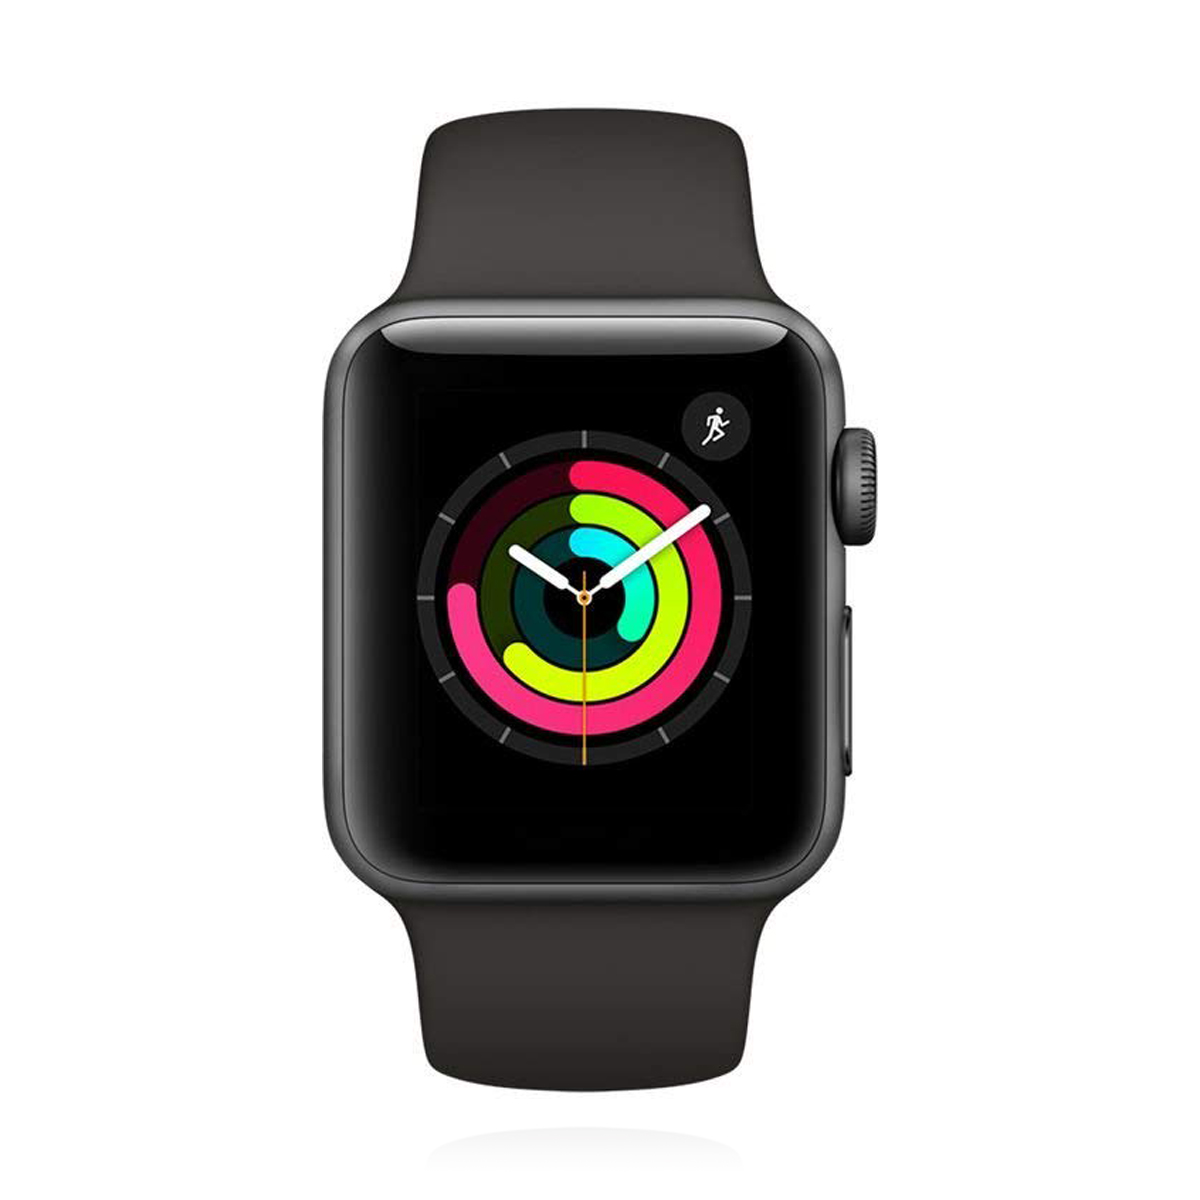 Apple WATCH Series 3 38mm GPS spacegraues Aluminiumgehäuse mit grauem Sportarmband